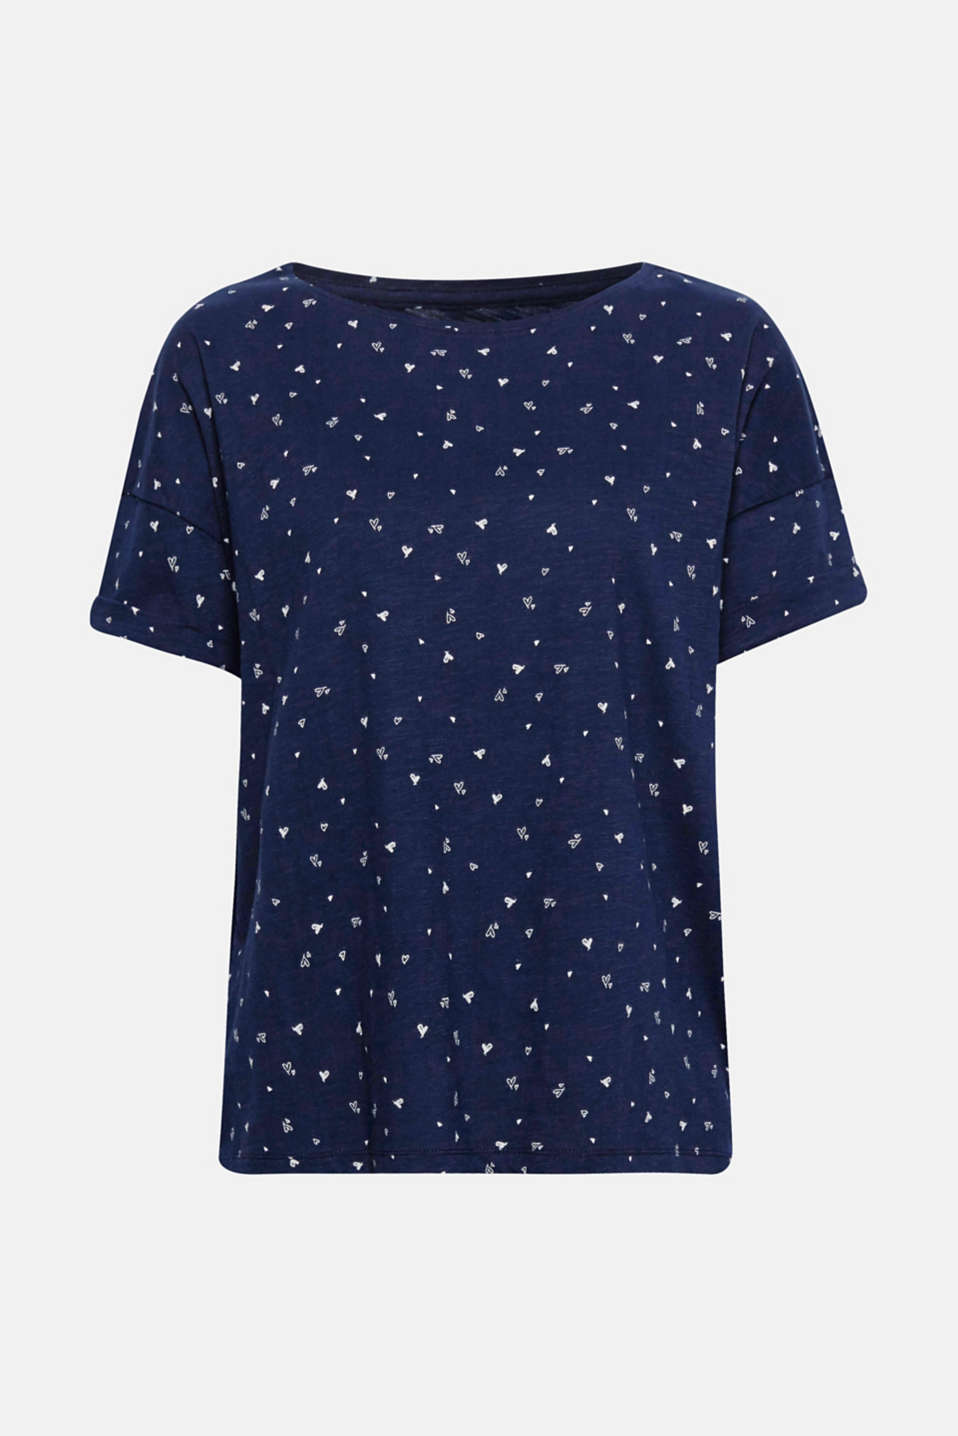 The soft slub jersey made of pure cotton and charming print make this T-shirt a style favourite for everyday wear.